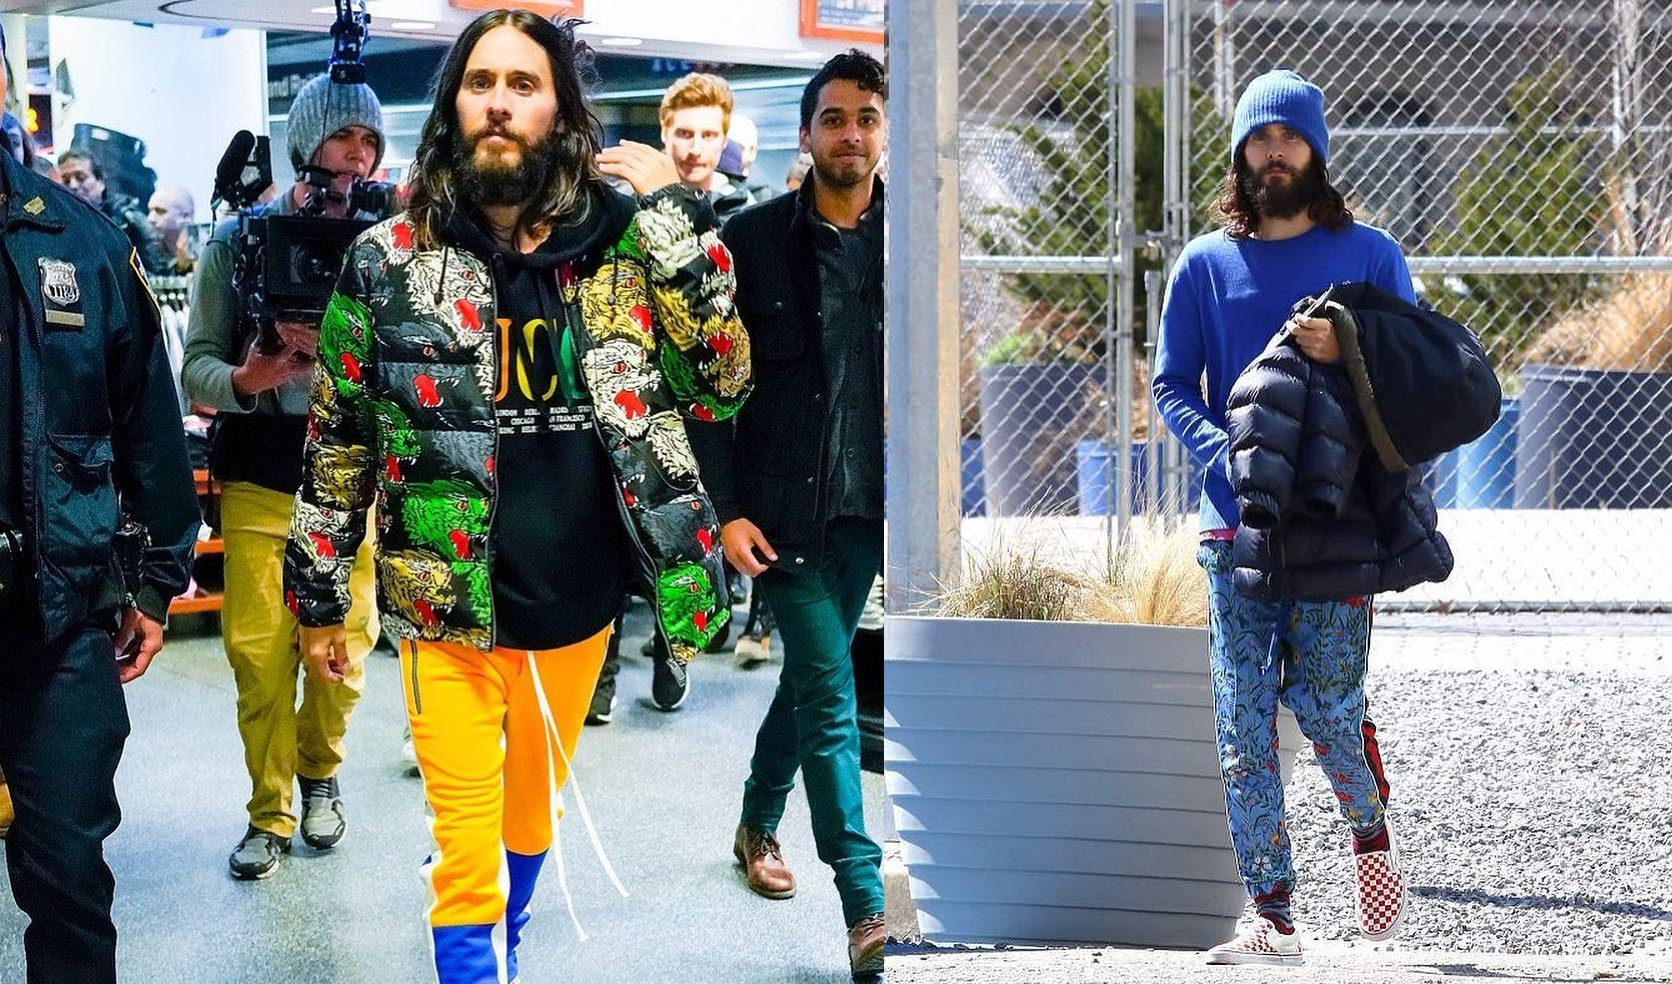 SPOTTED: Jared Leto in Gucci, Vans and Fear Of God